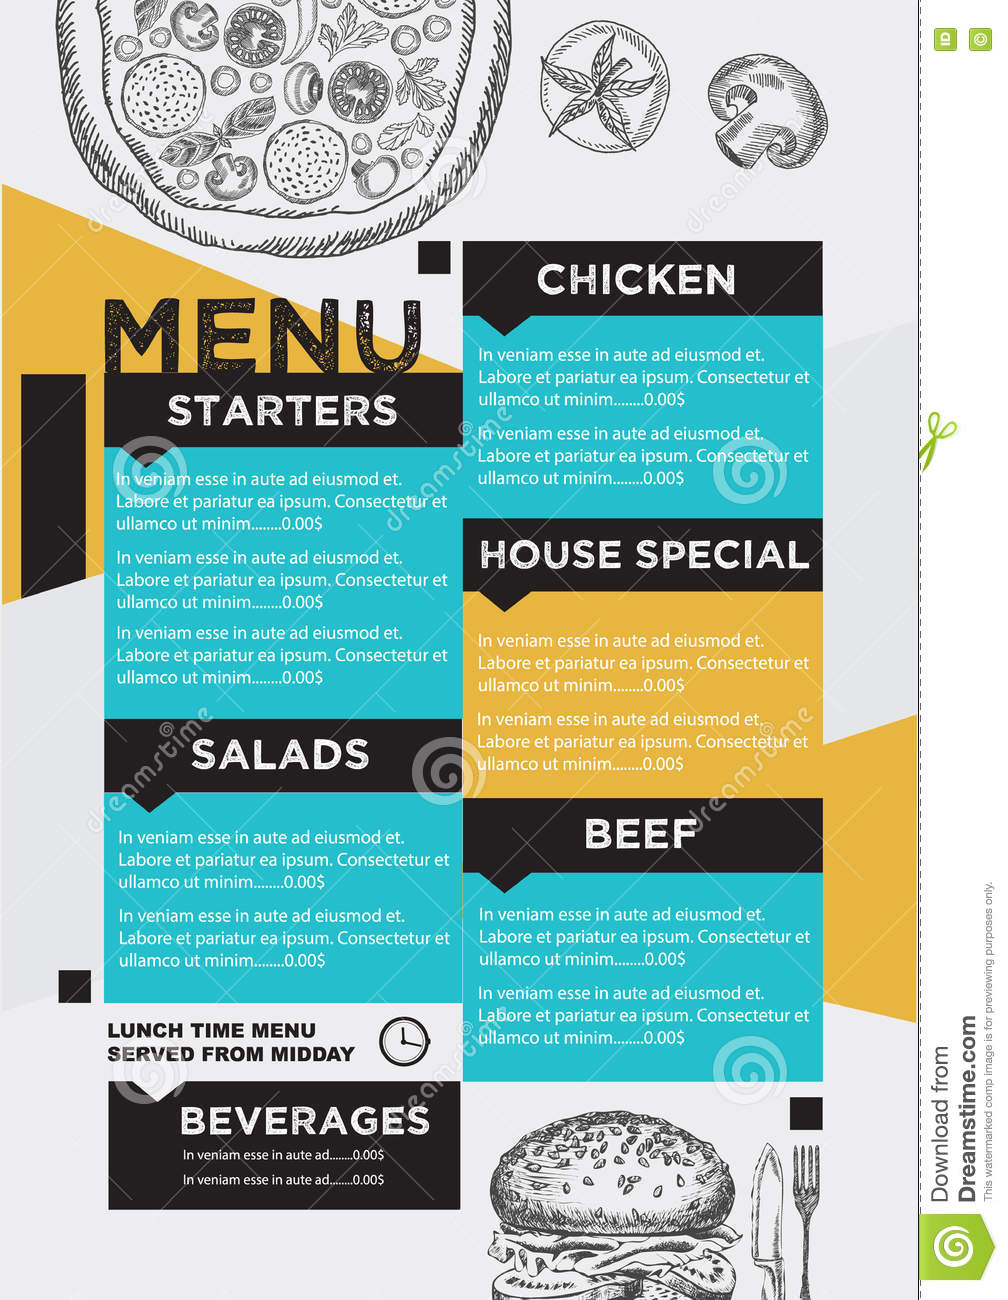 Menu cafe restaurant template placemat food board design